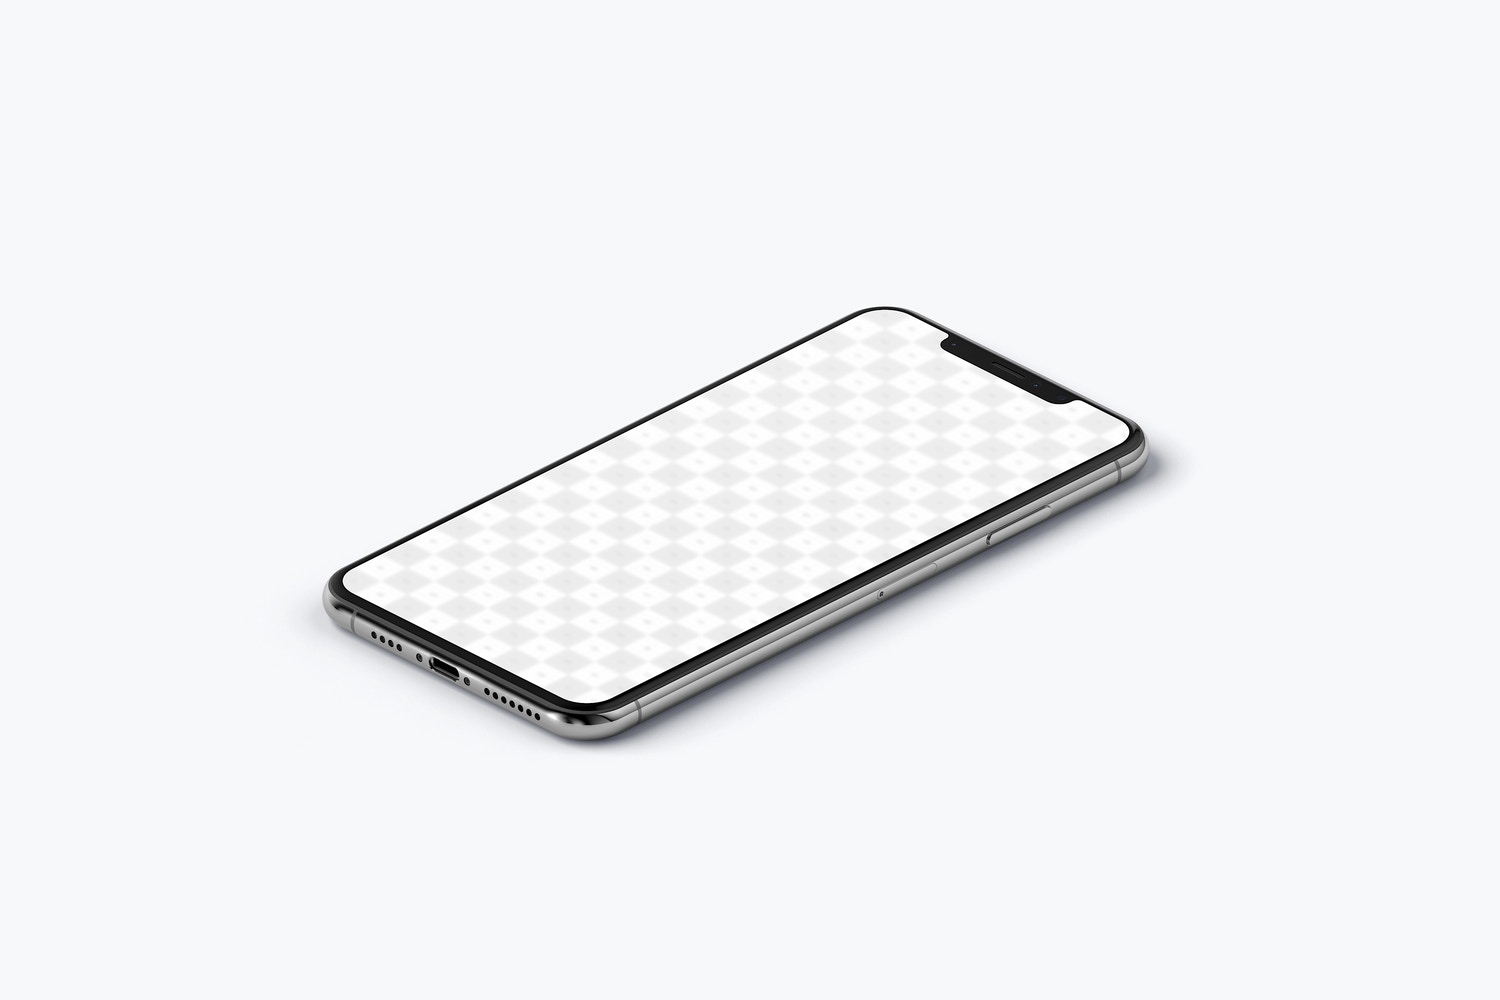 iPhone XS Max Mockup, Isometric Right View (2) by Original Mockups on Original Mockups